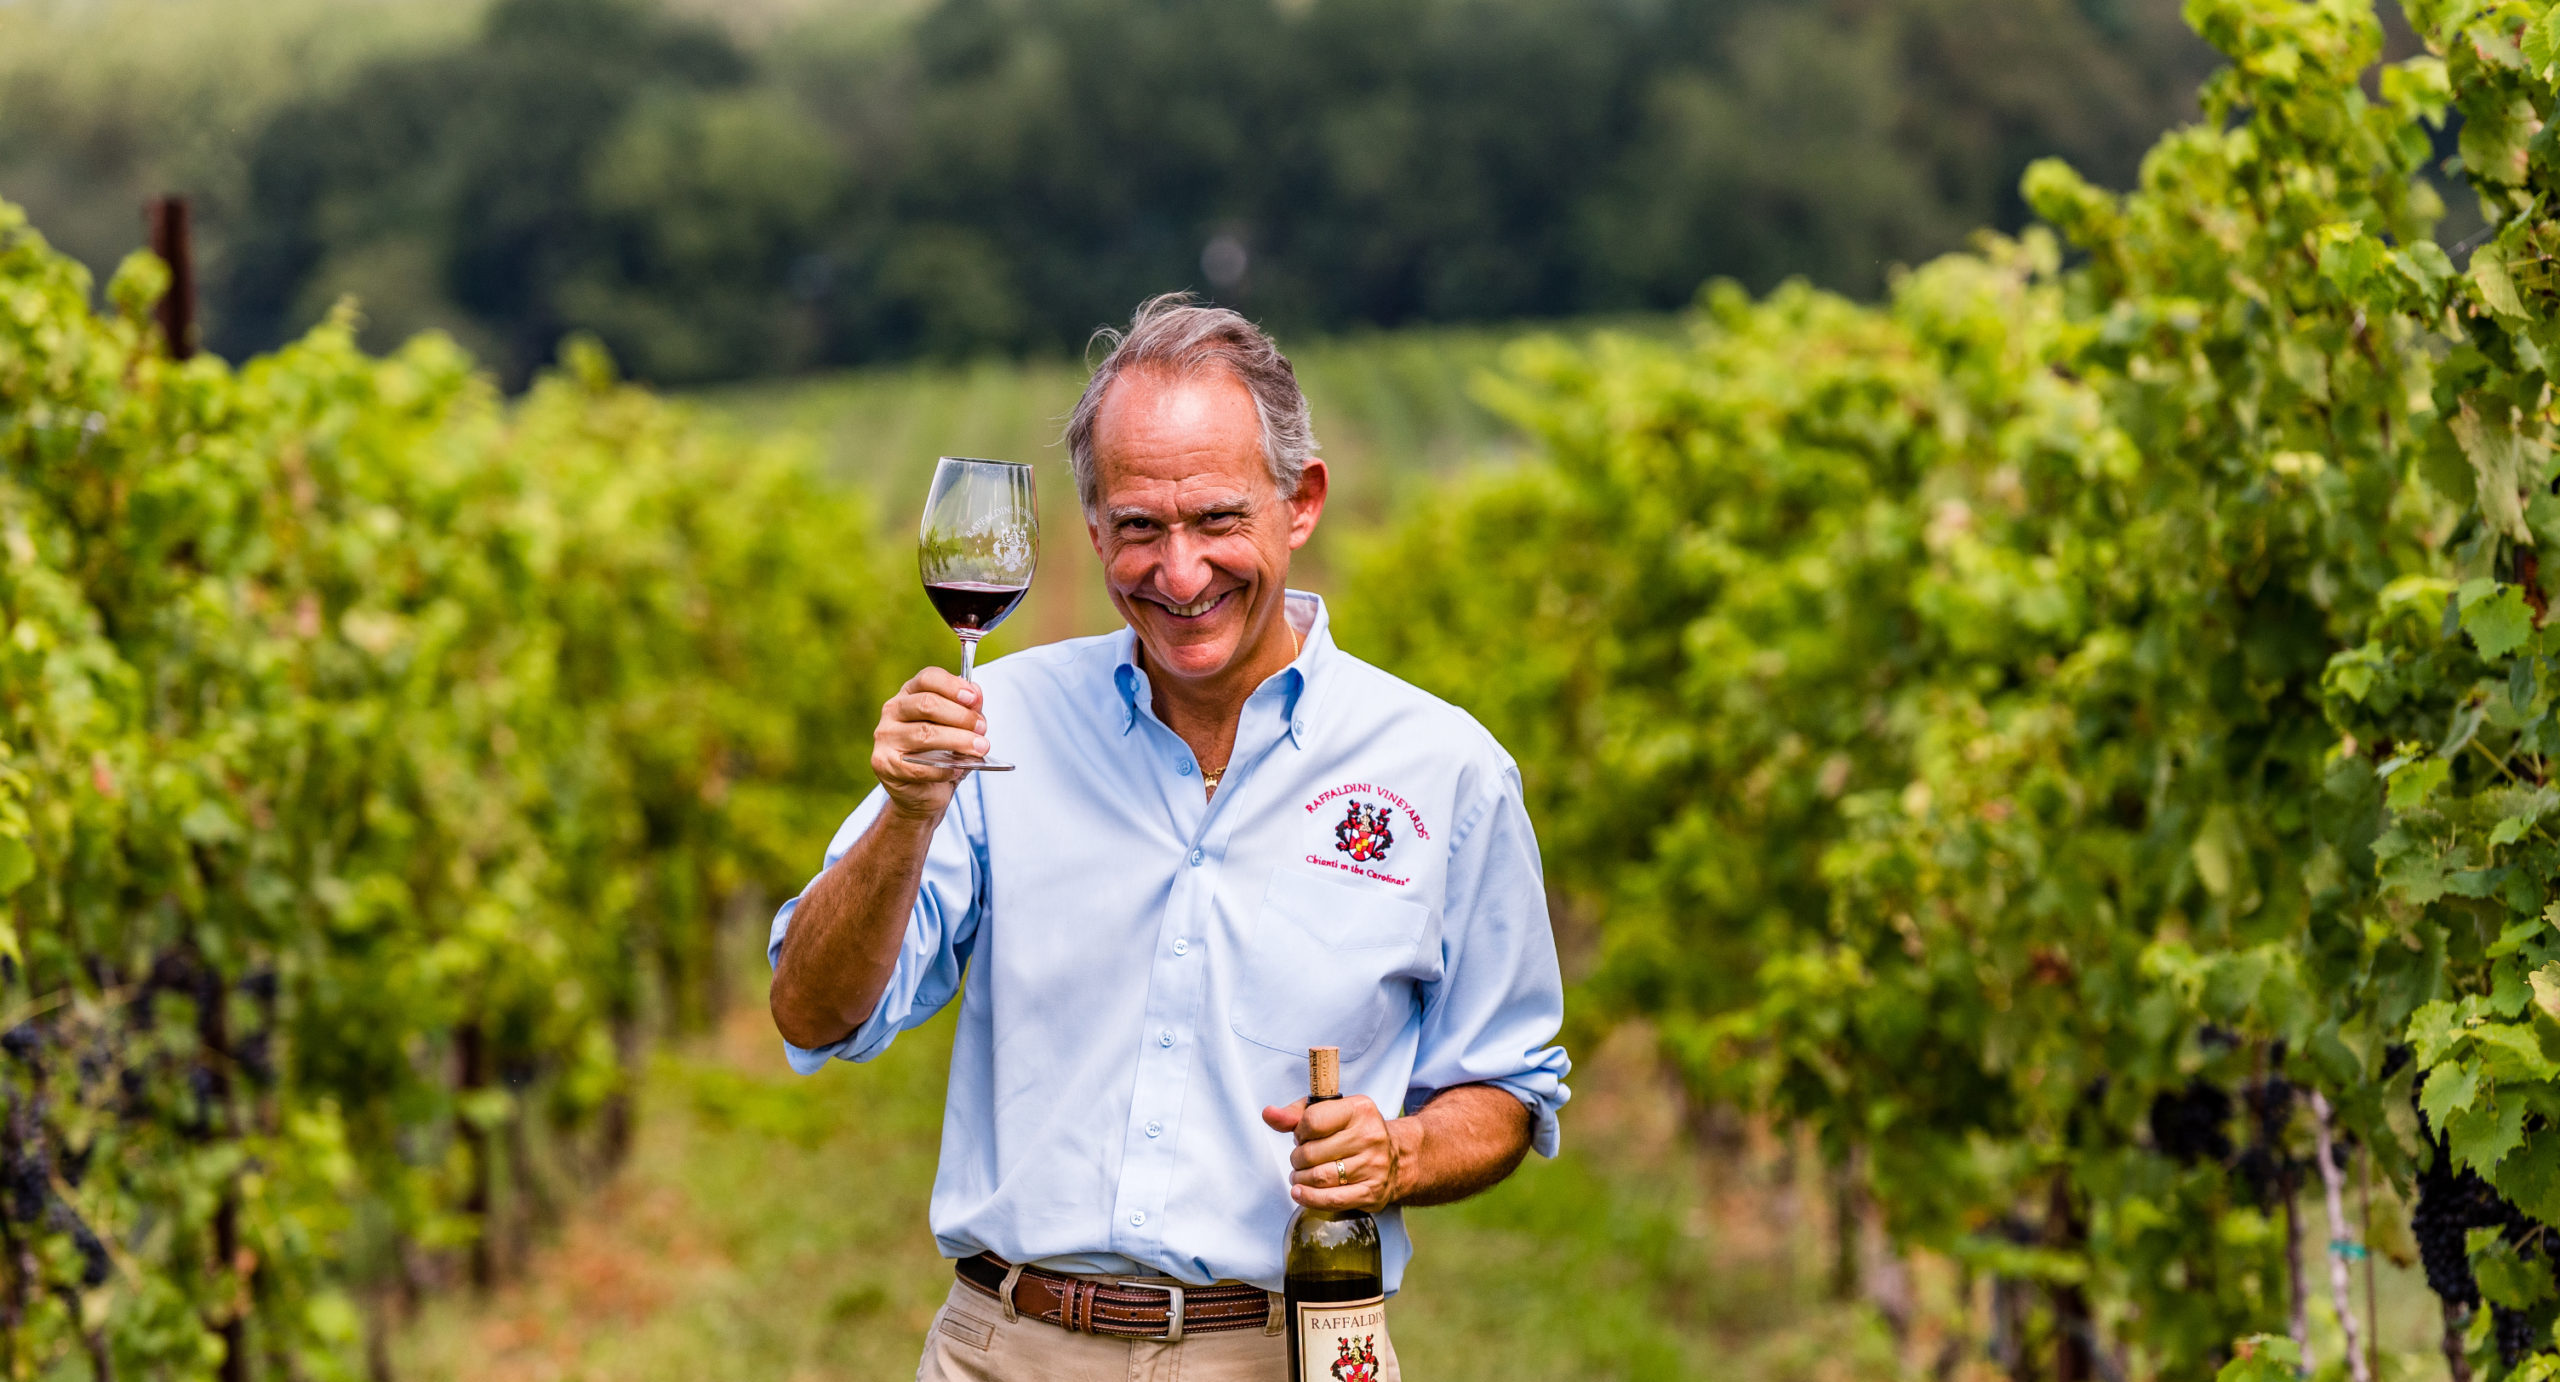 Jay Raffaldini in the Vines courtesy of Visit Winston Salem